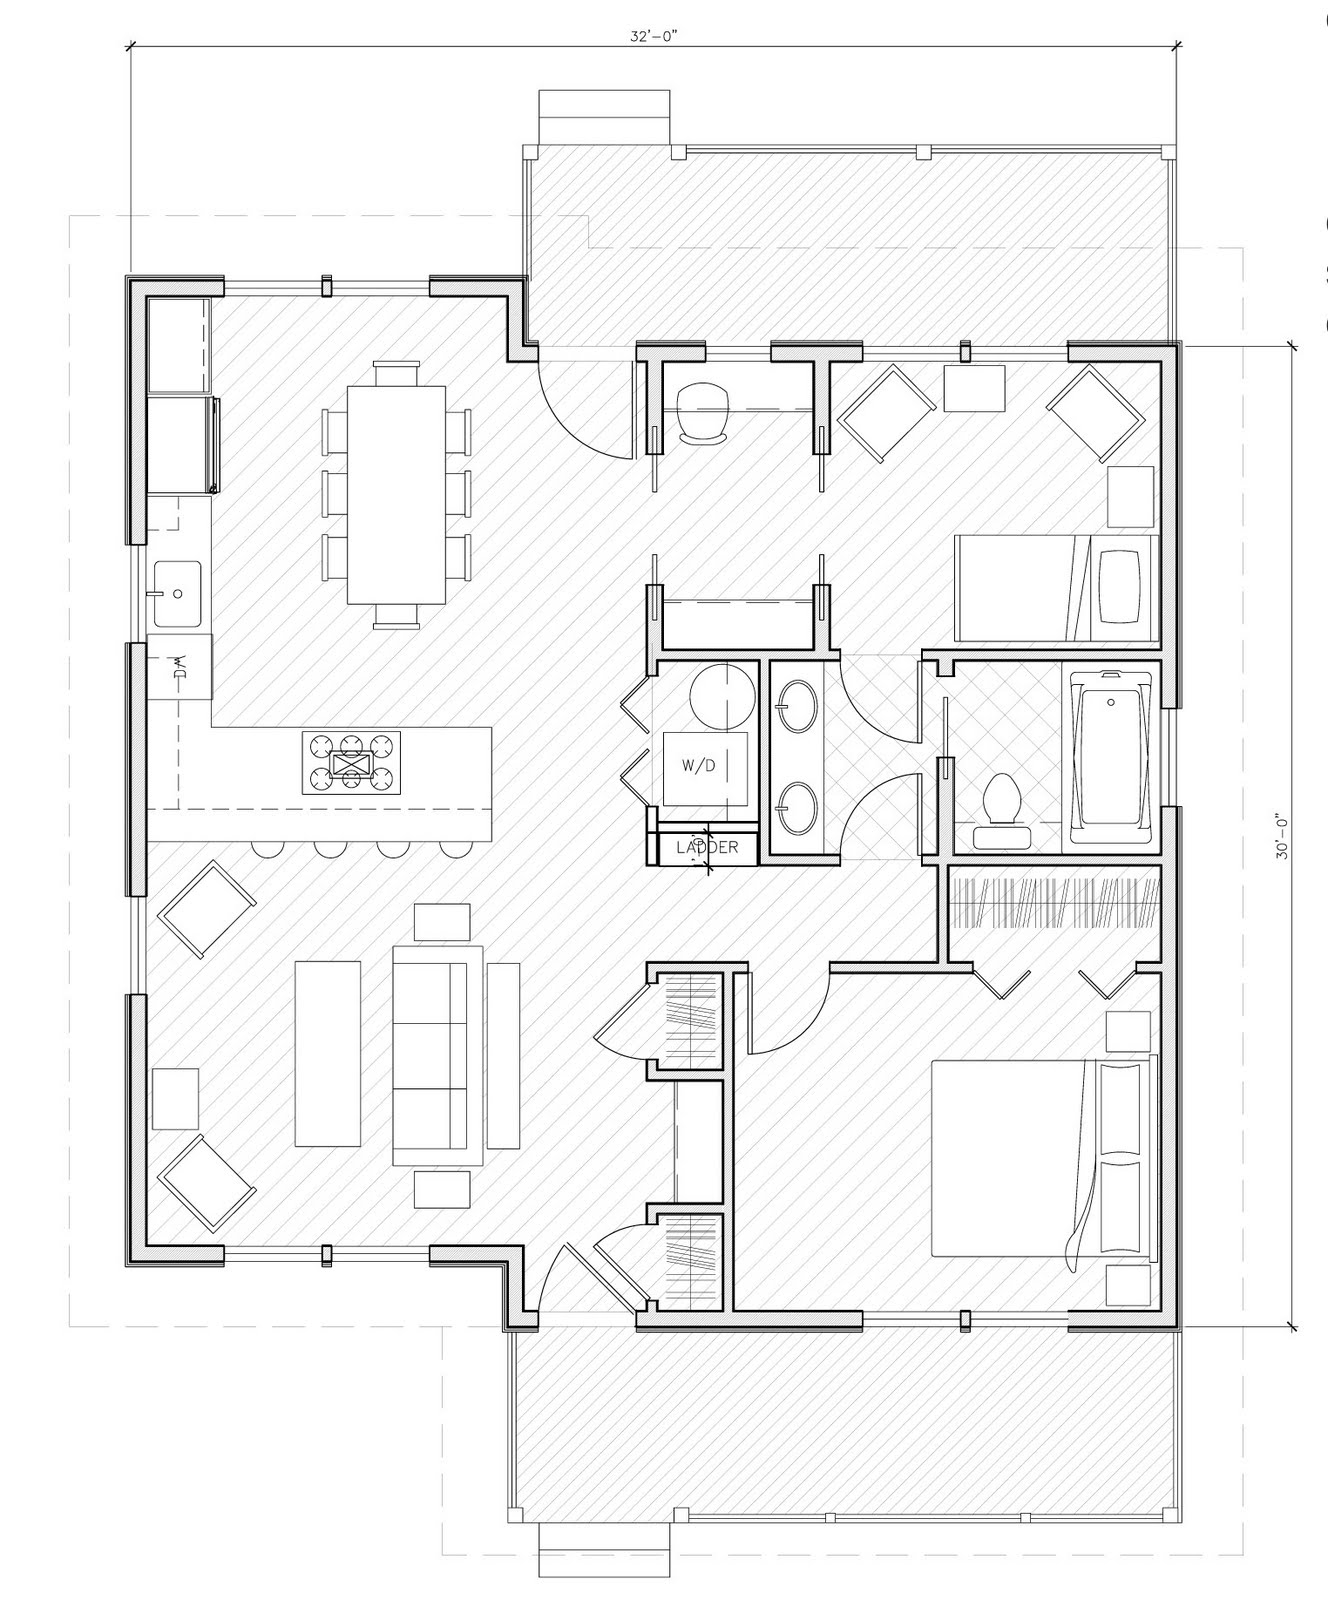 House plans under 1000 square feet joy studio design for Home designs 1000 sq ft